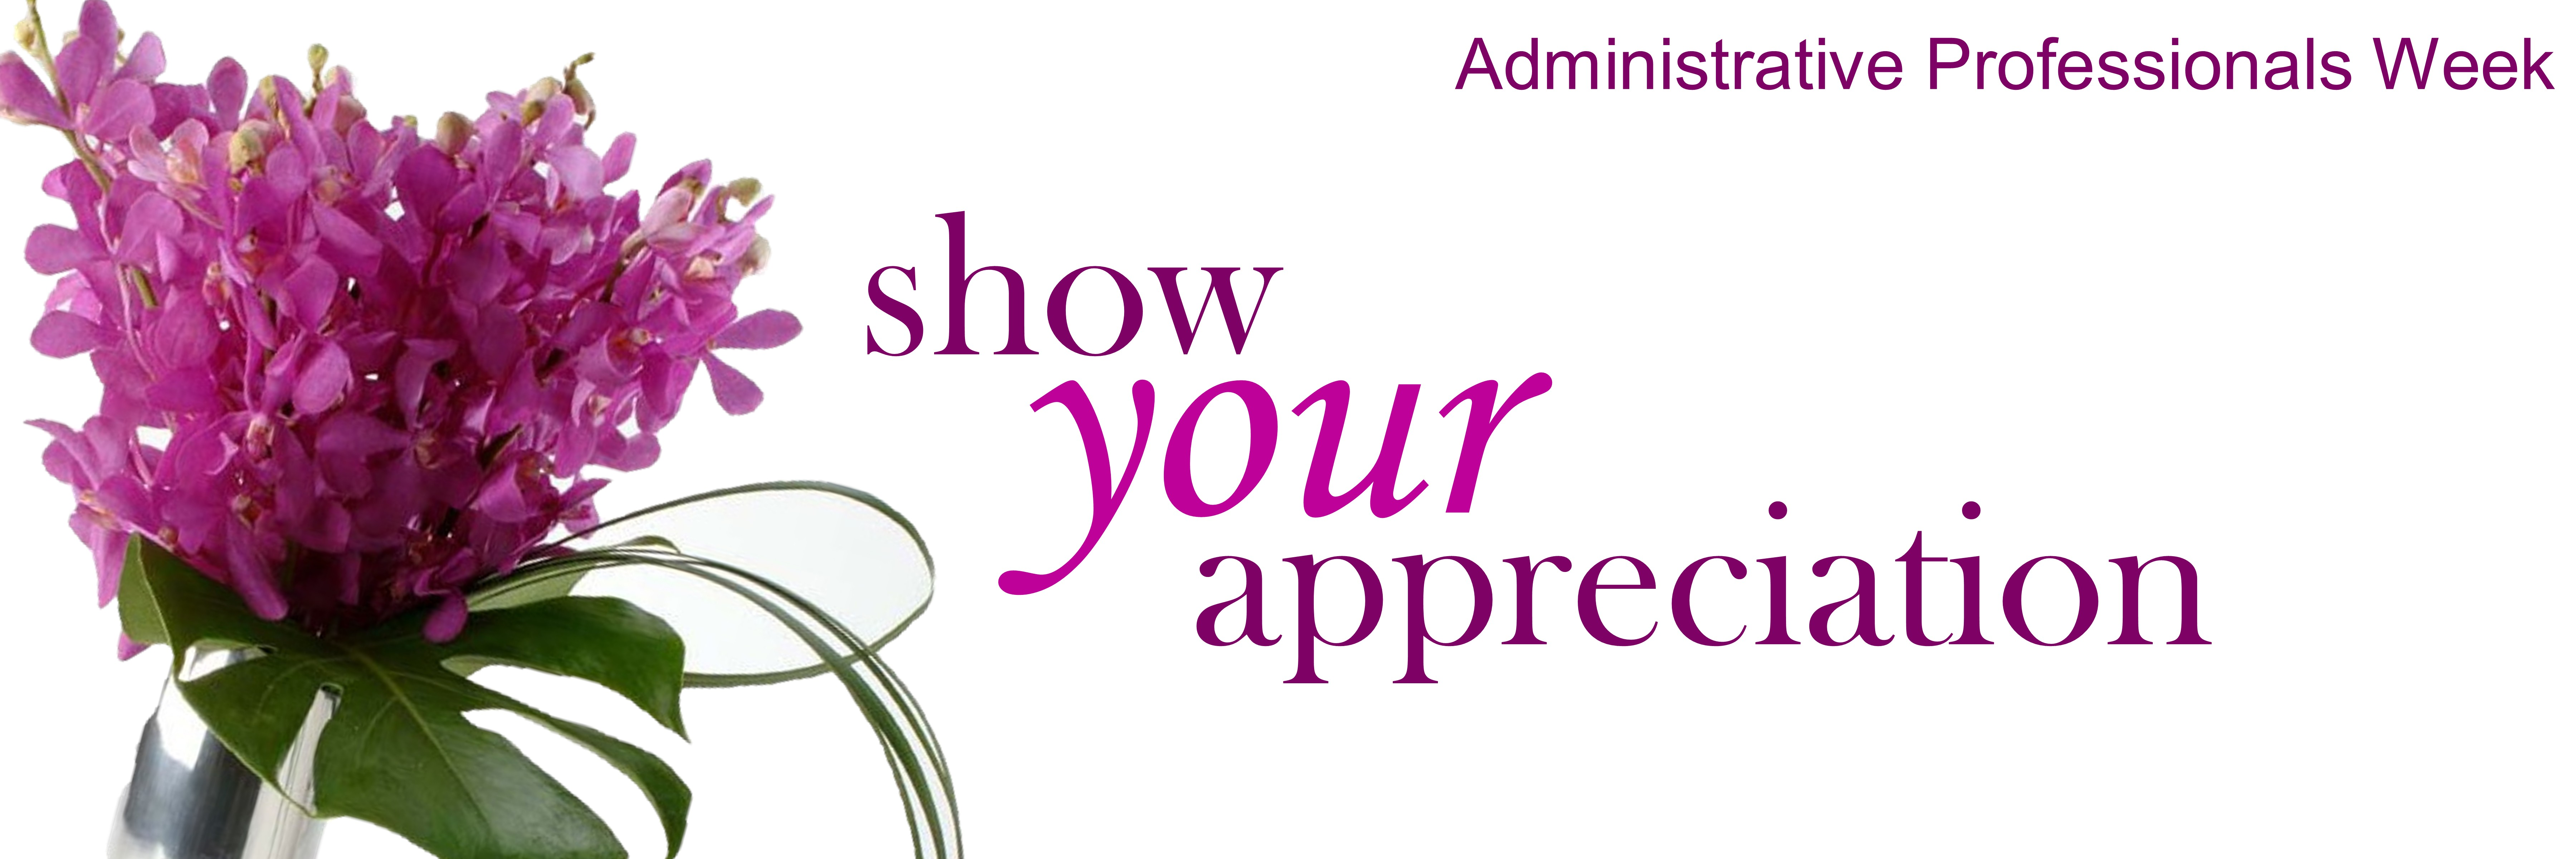 Administrative Professionals Week | Dandelions Flowers & Gifts